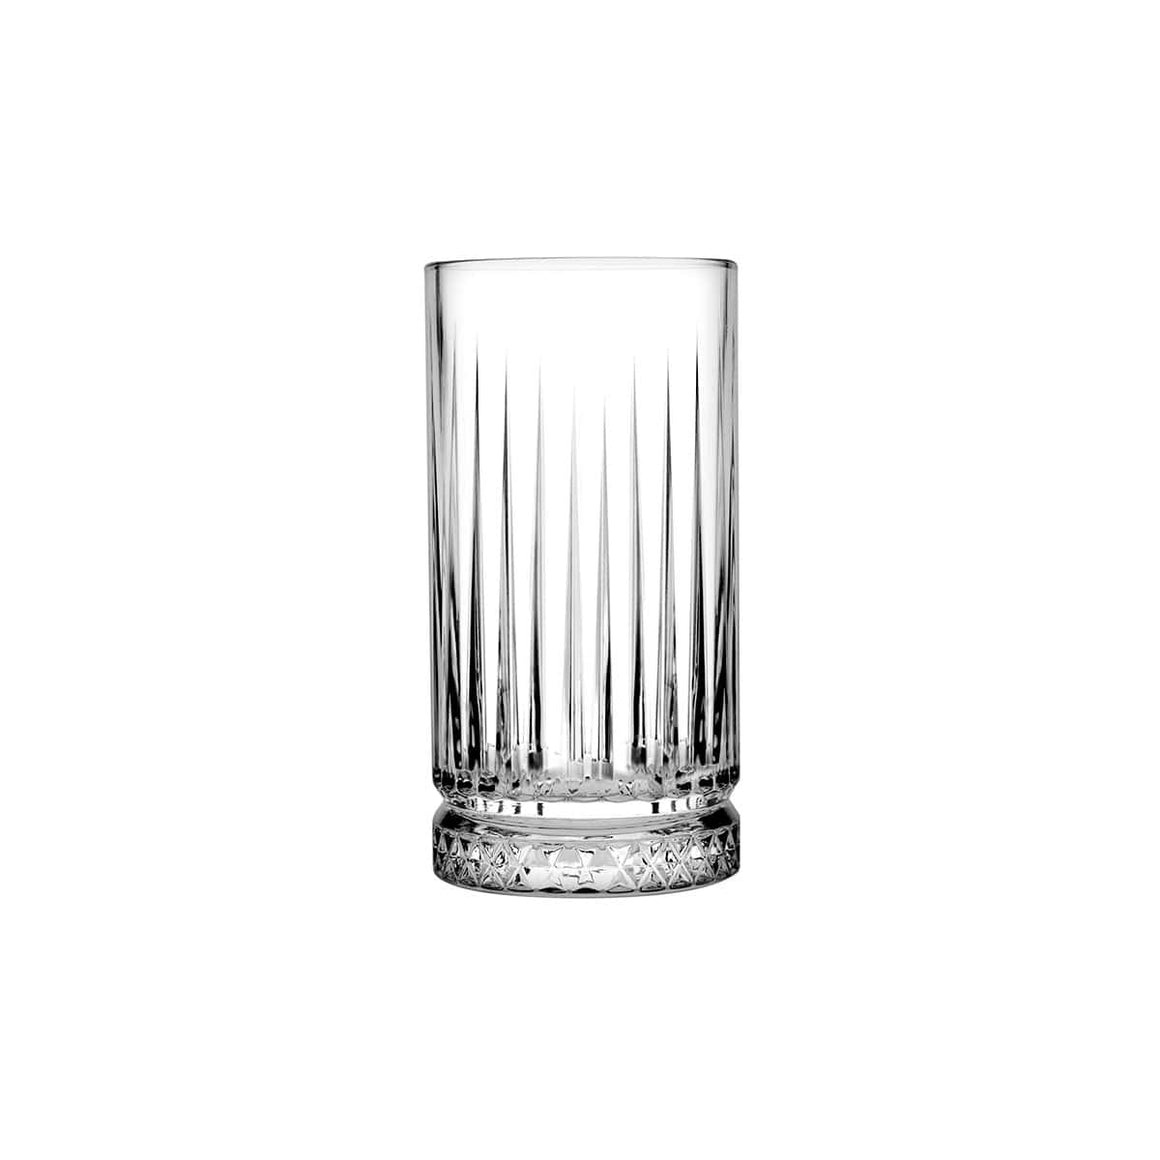 Pasabahce Elysia Whisky Tumbler Crystal Scotch Glasses 445 ml - 1 pack